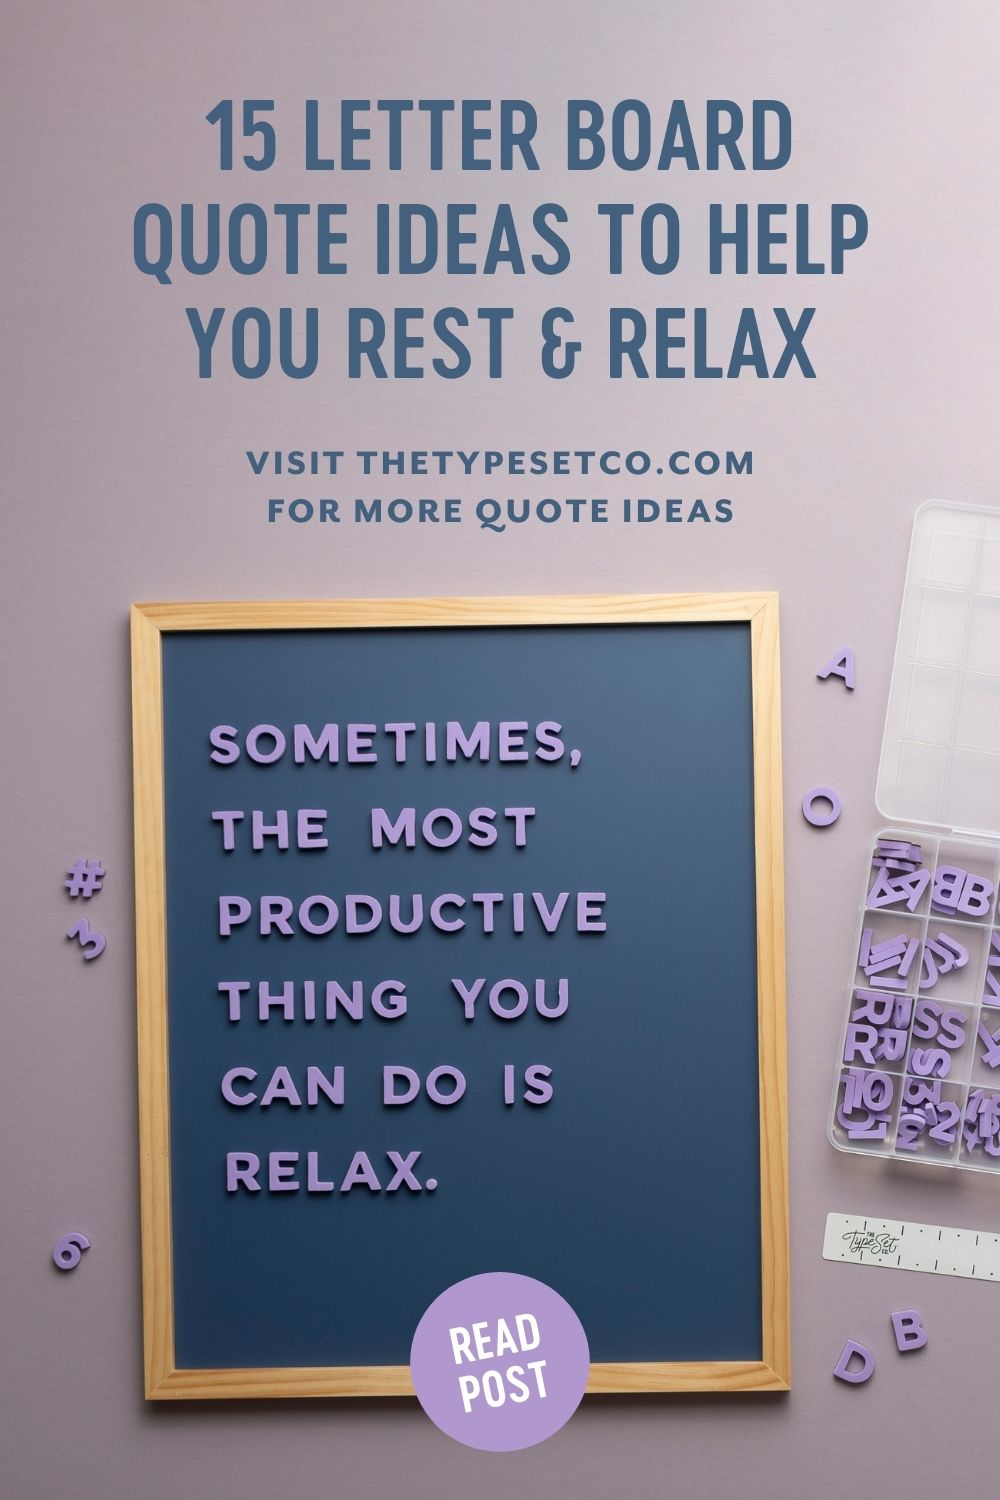 Letterboard Quote Ideas About Rest & Relaxation